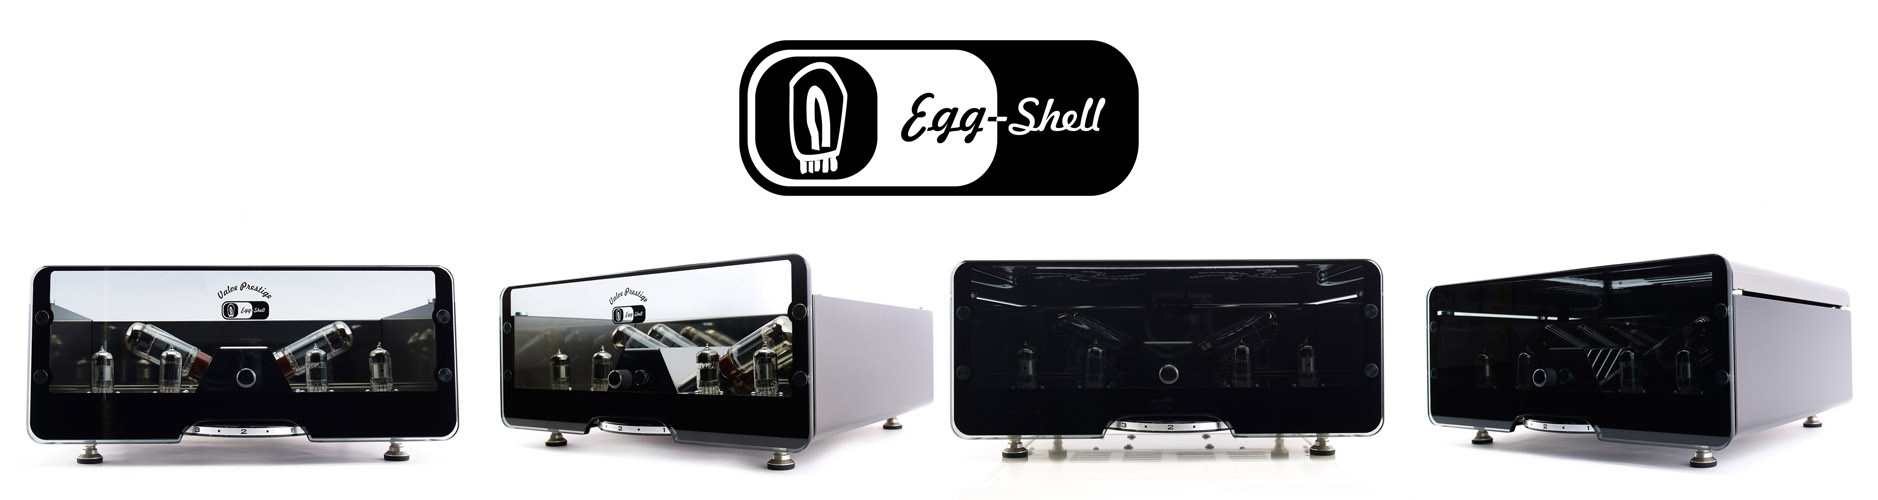 EGG-SHELL vacuum tube amplifiers by Encore Seven